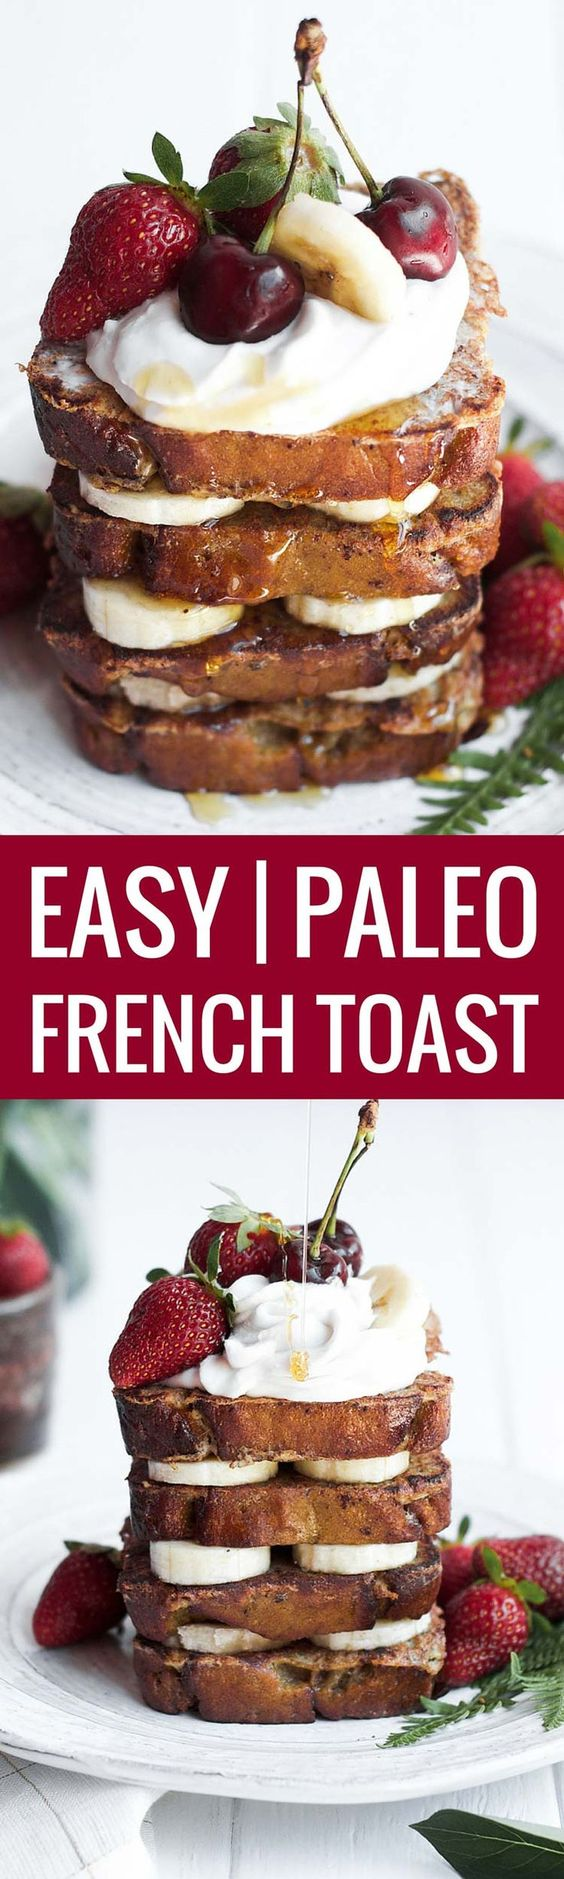 easy-paleo-french-toast-gluten-free